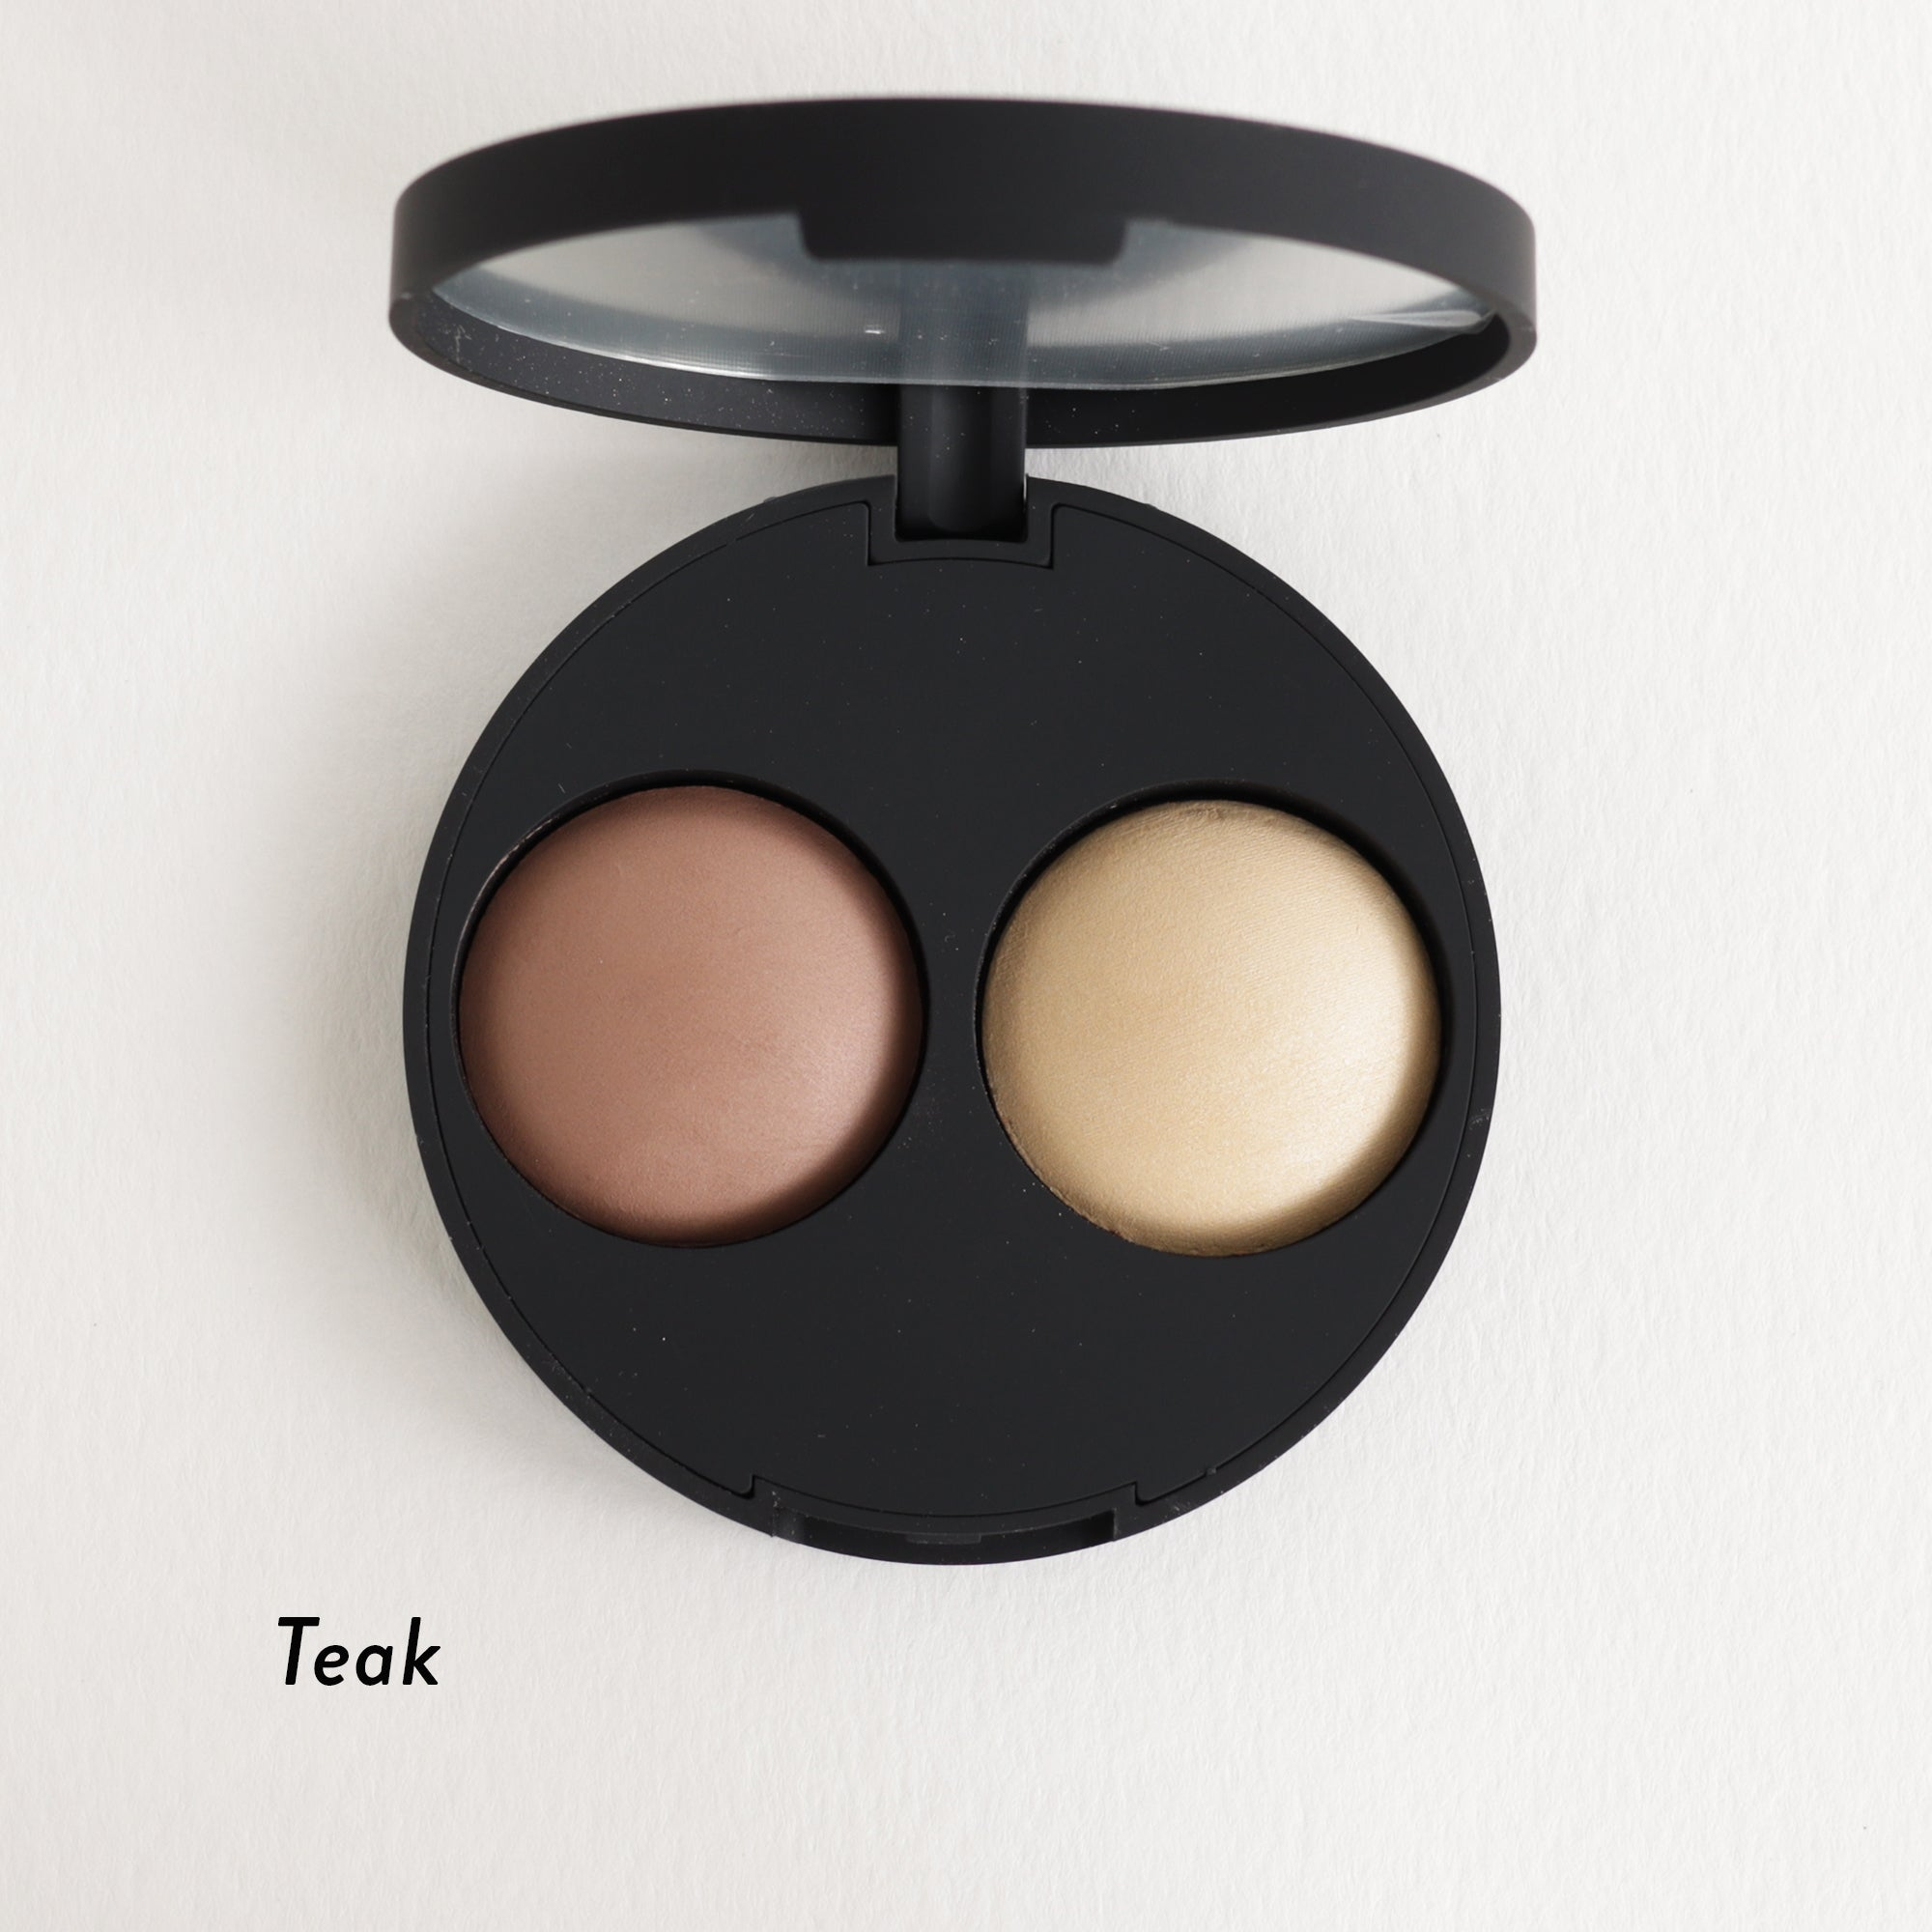 Inika Baked Contour Highlight Duo Teak